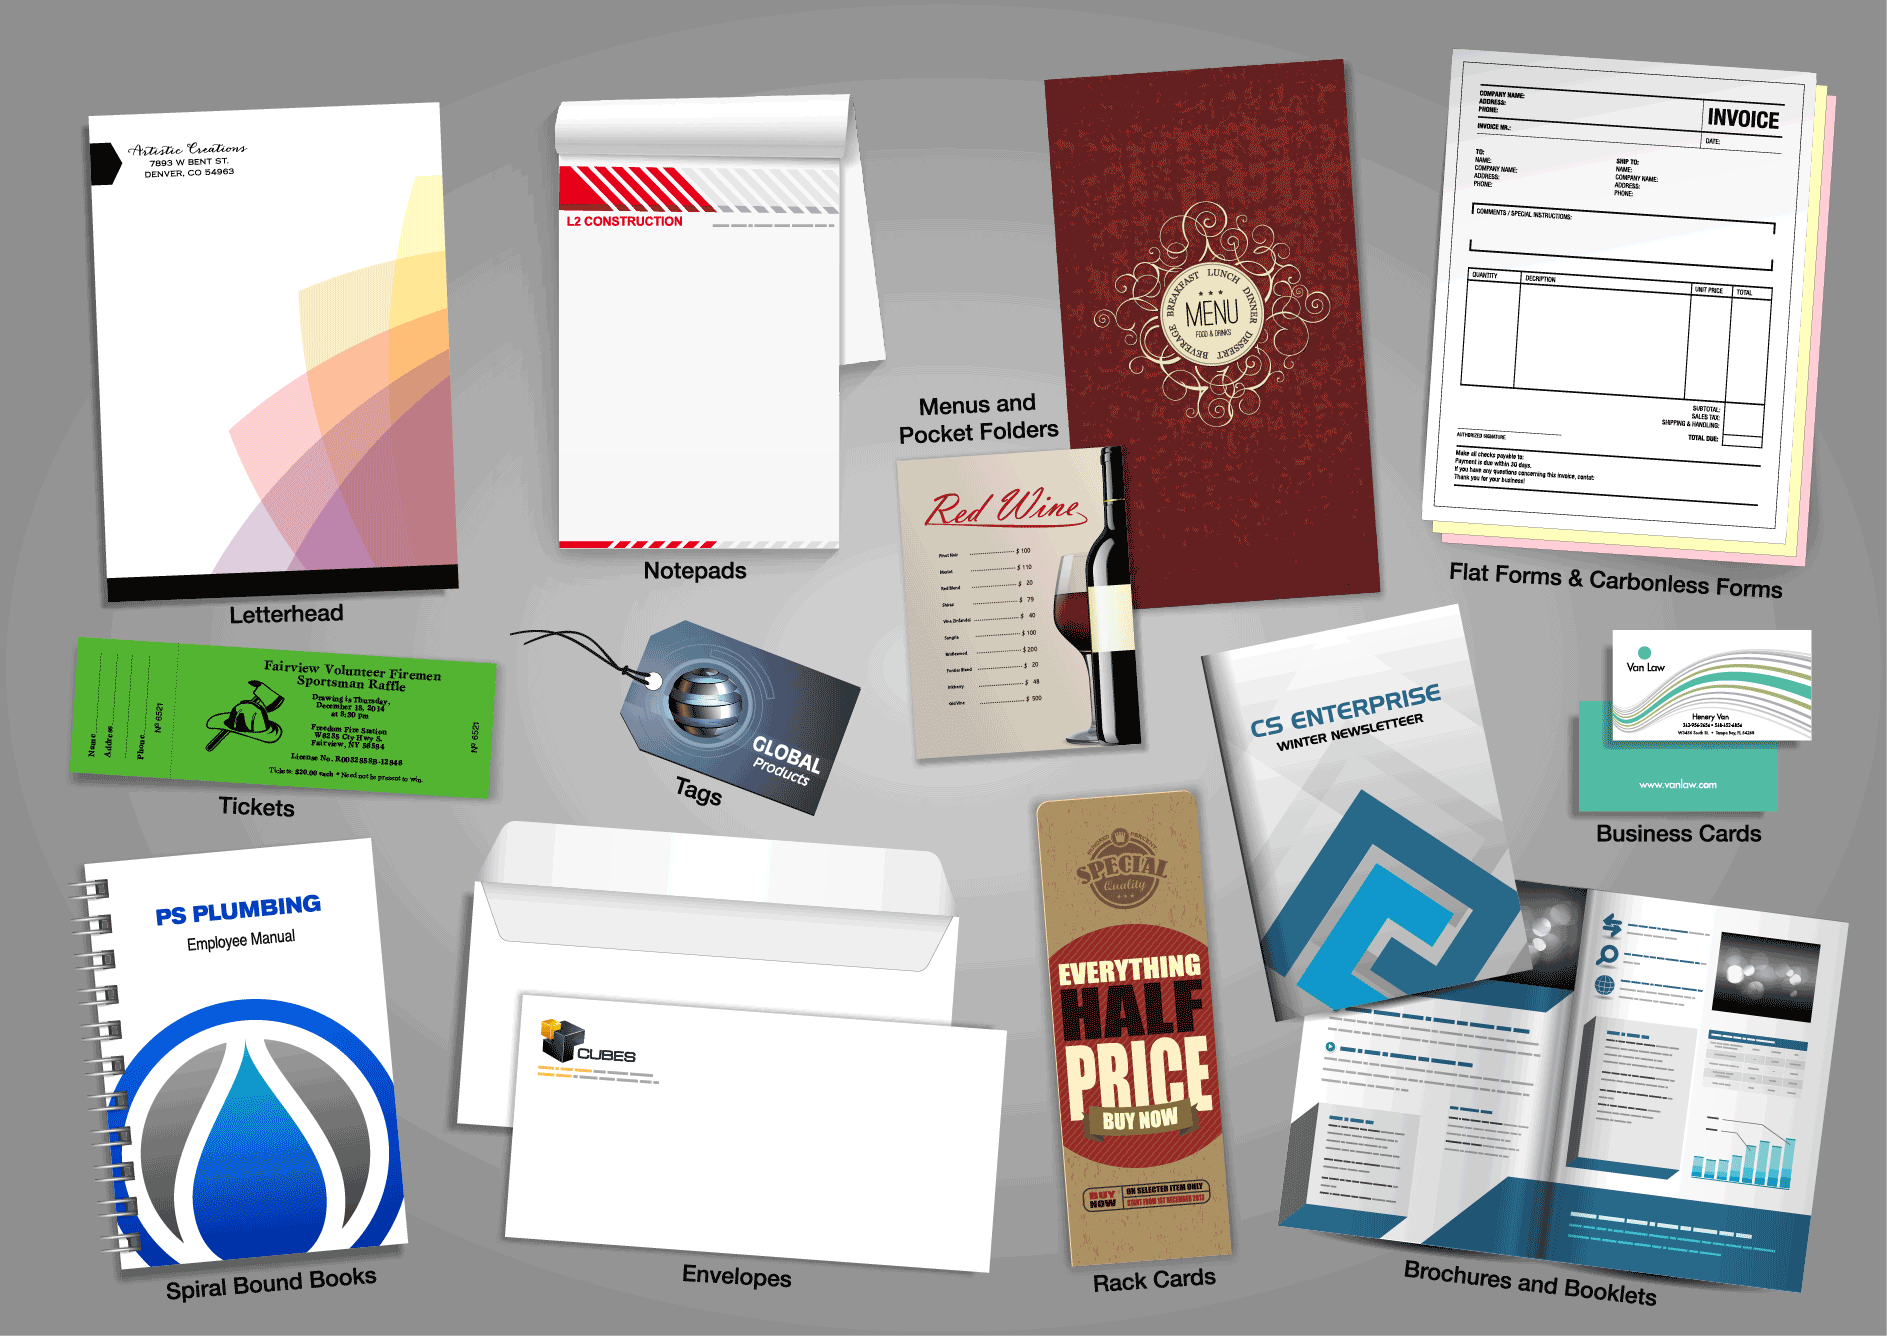 print, printing, wedding, menus, pocket folders, letterheads,  Envelopes, RackCards, Brochures and Booklets, Spiral bound Books, forms, calling cards, letter heads